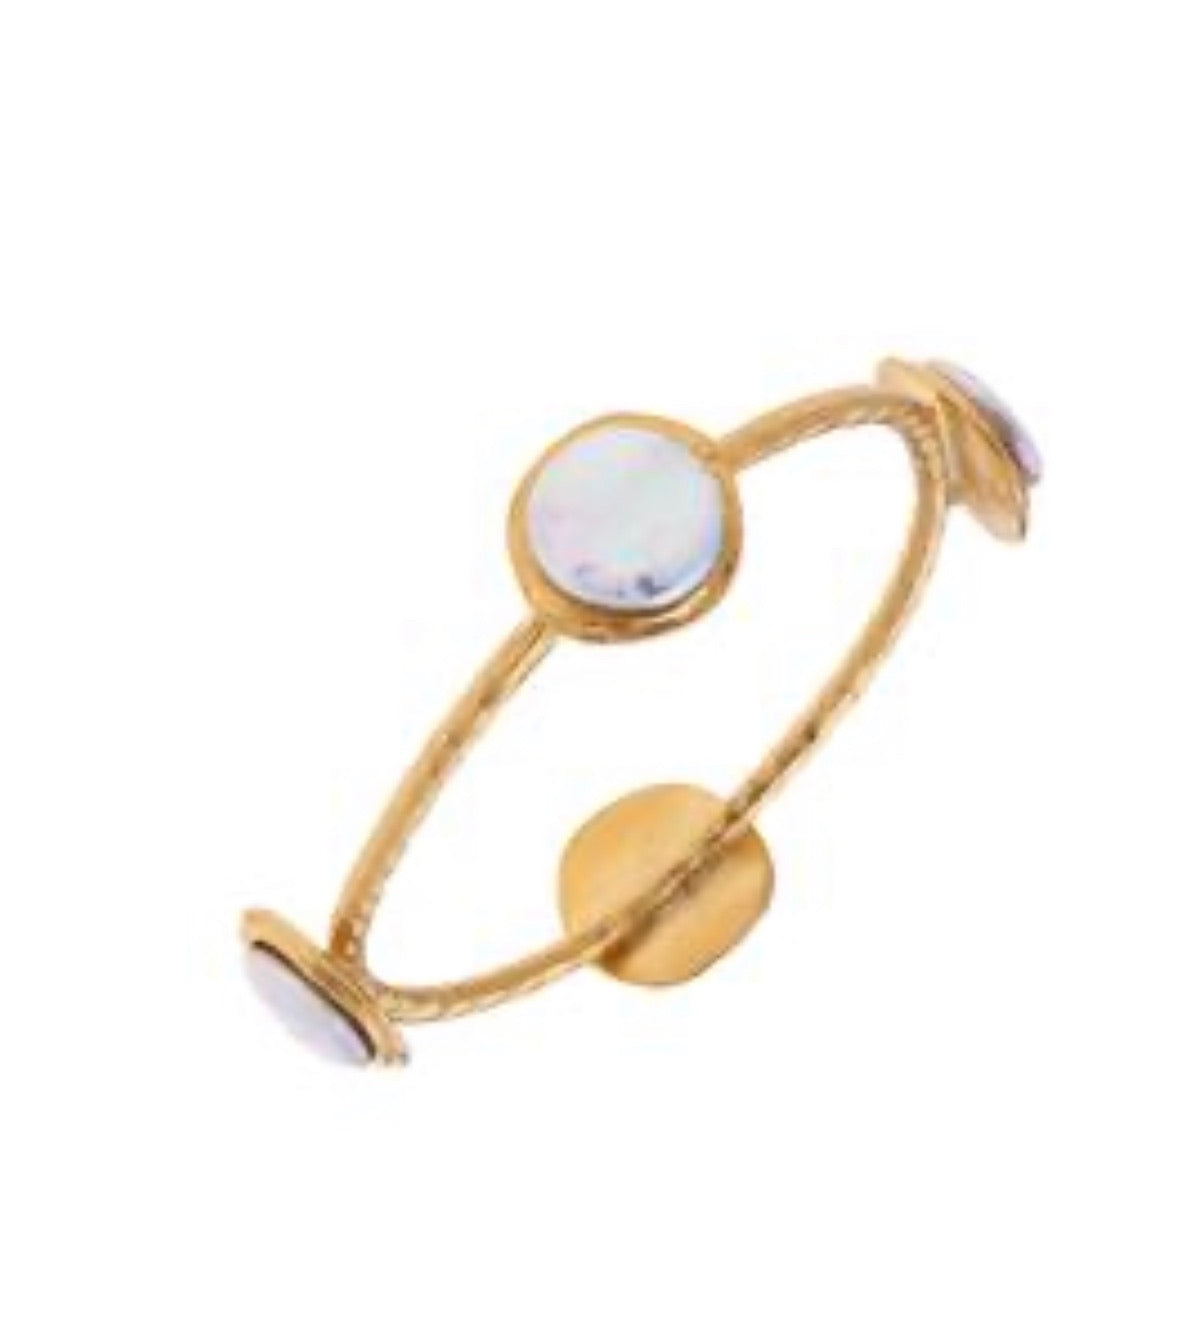 Genuine Freshwater Pearls 24Kt Gold Triple Plated Hand-cast Bangle Handmade by Susan Shaw